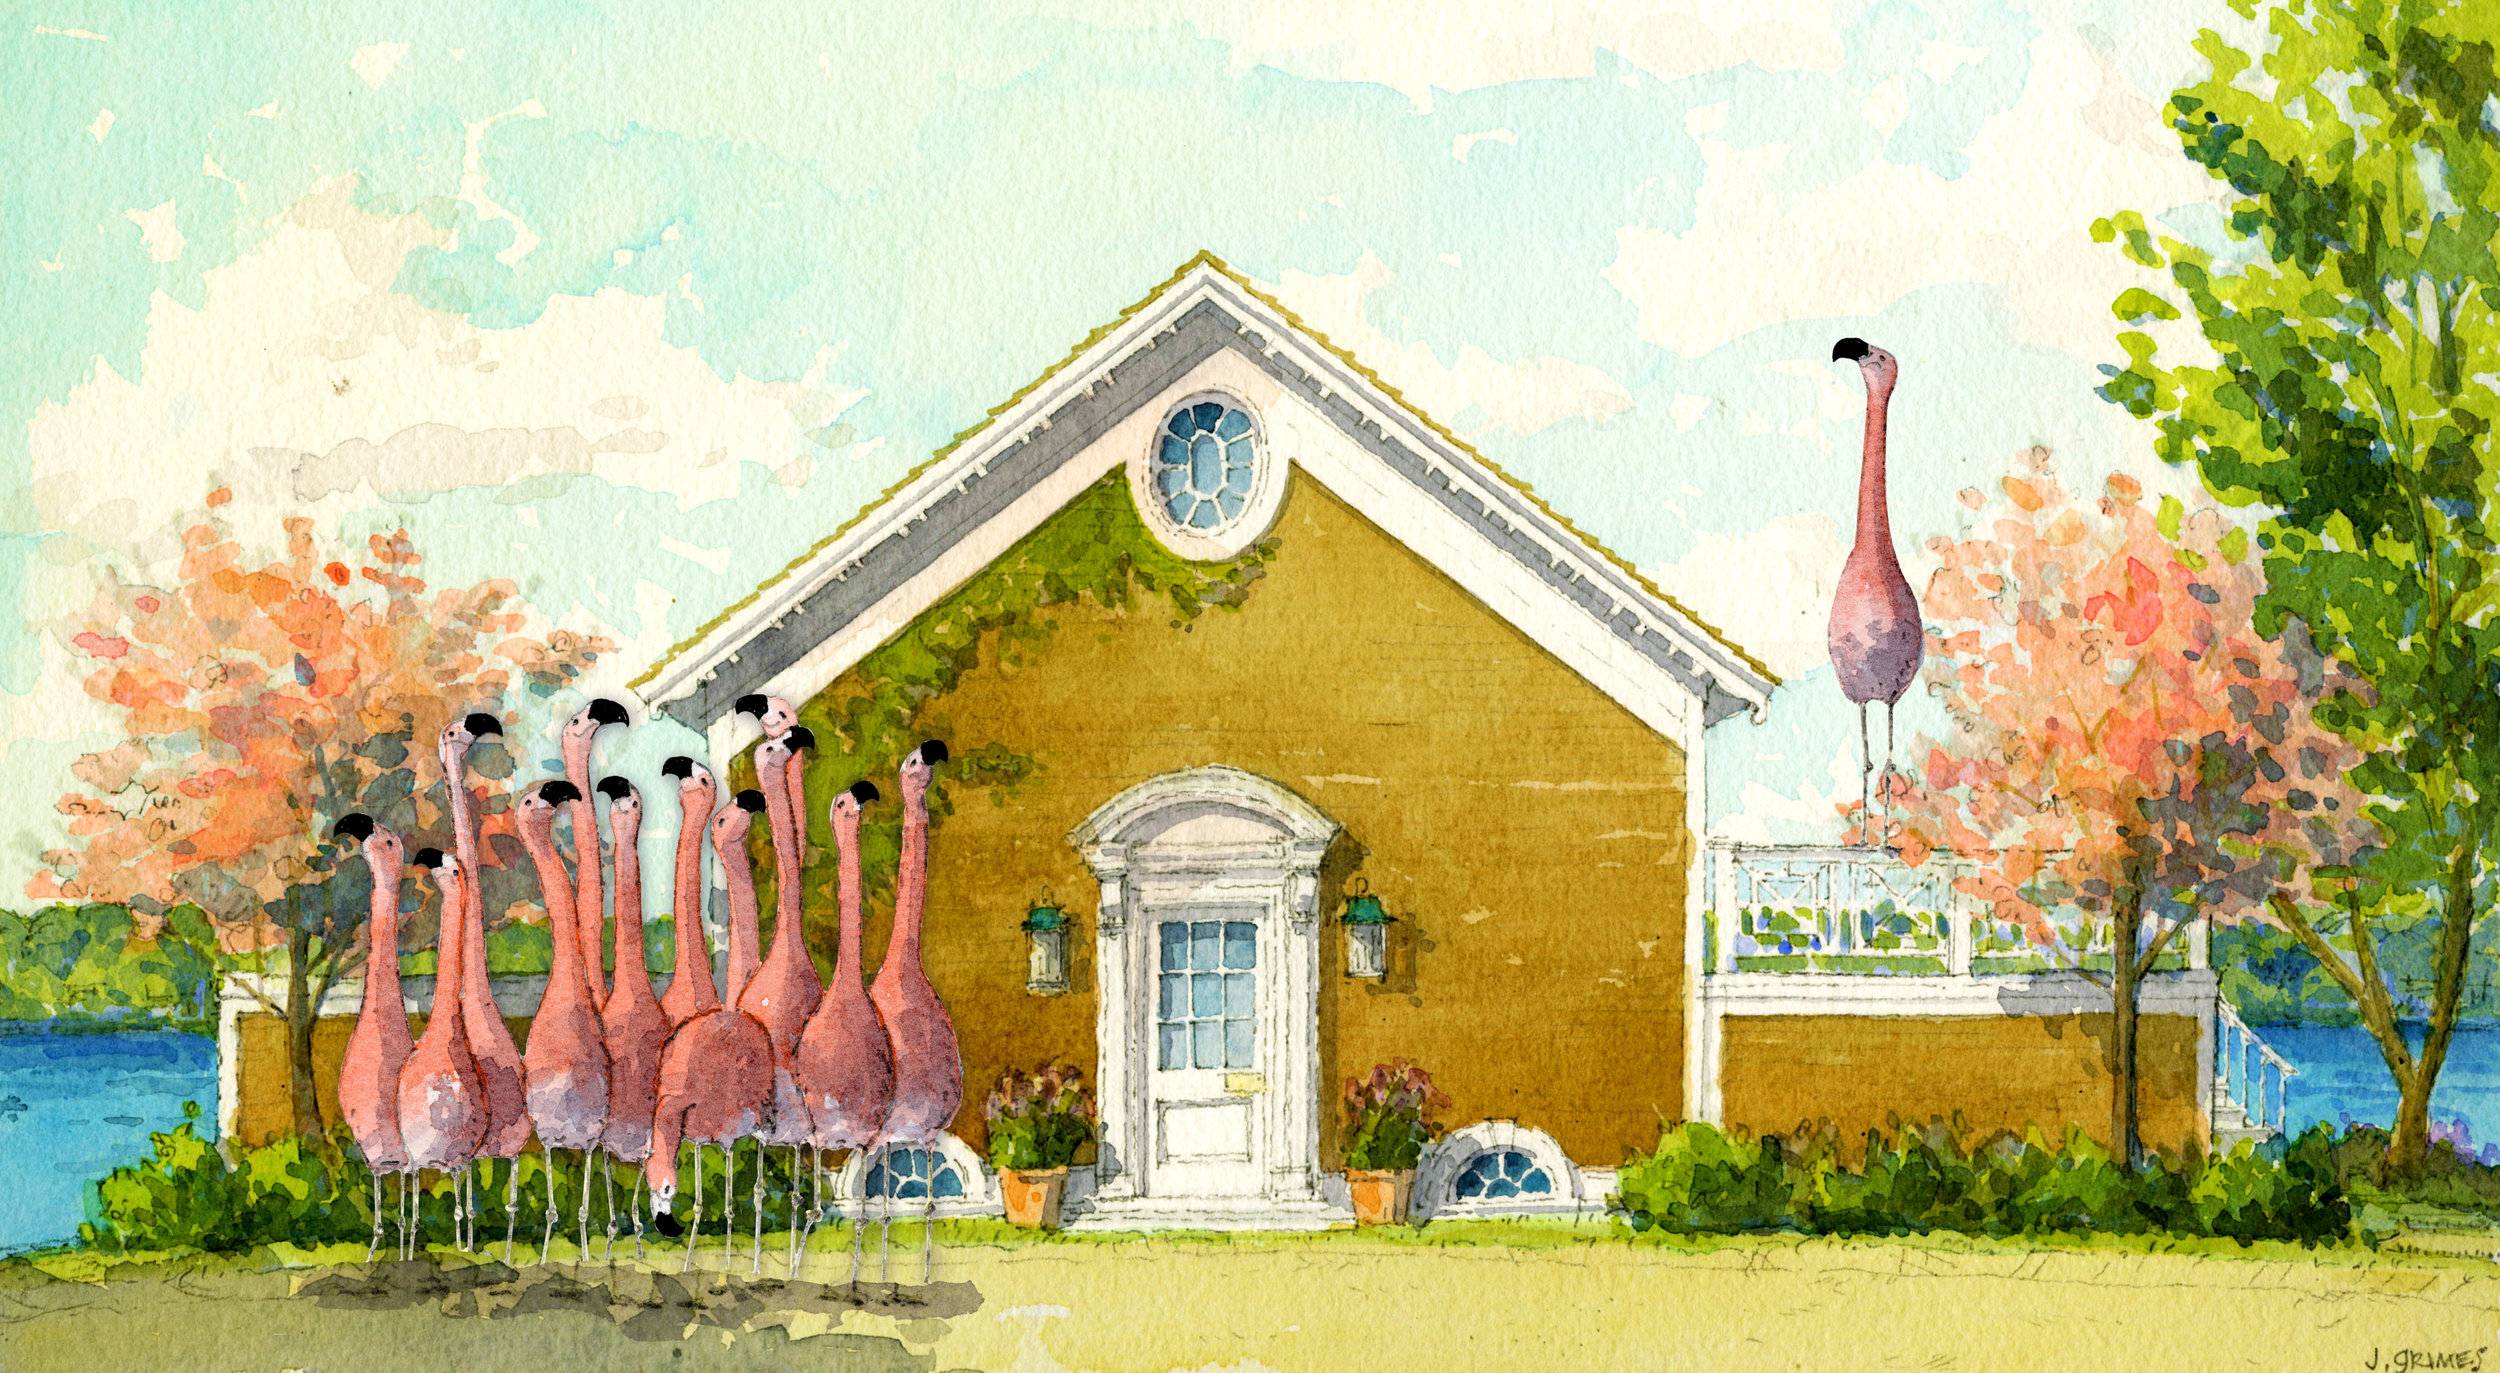 THERE'S SOMETHING WRONG WITH THE FLAMINGOS . Boat House, 2017. Flamboyance, 2018.